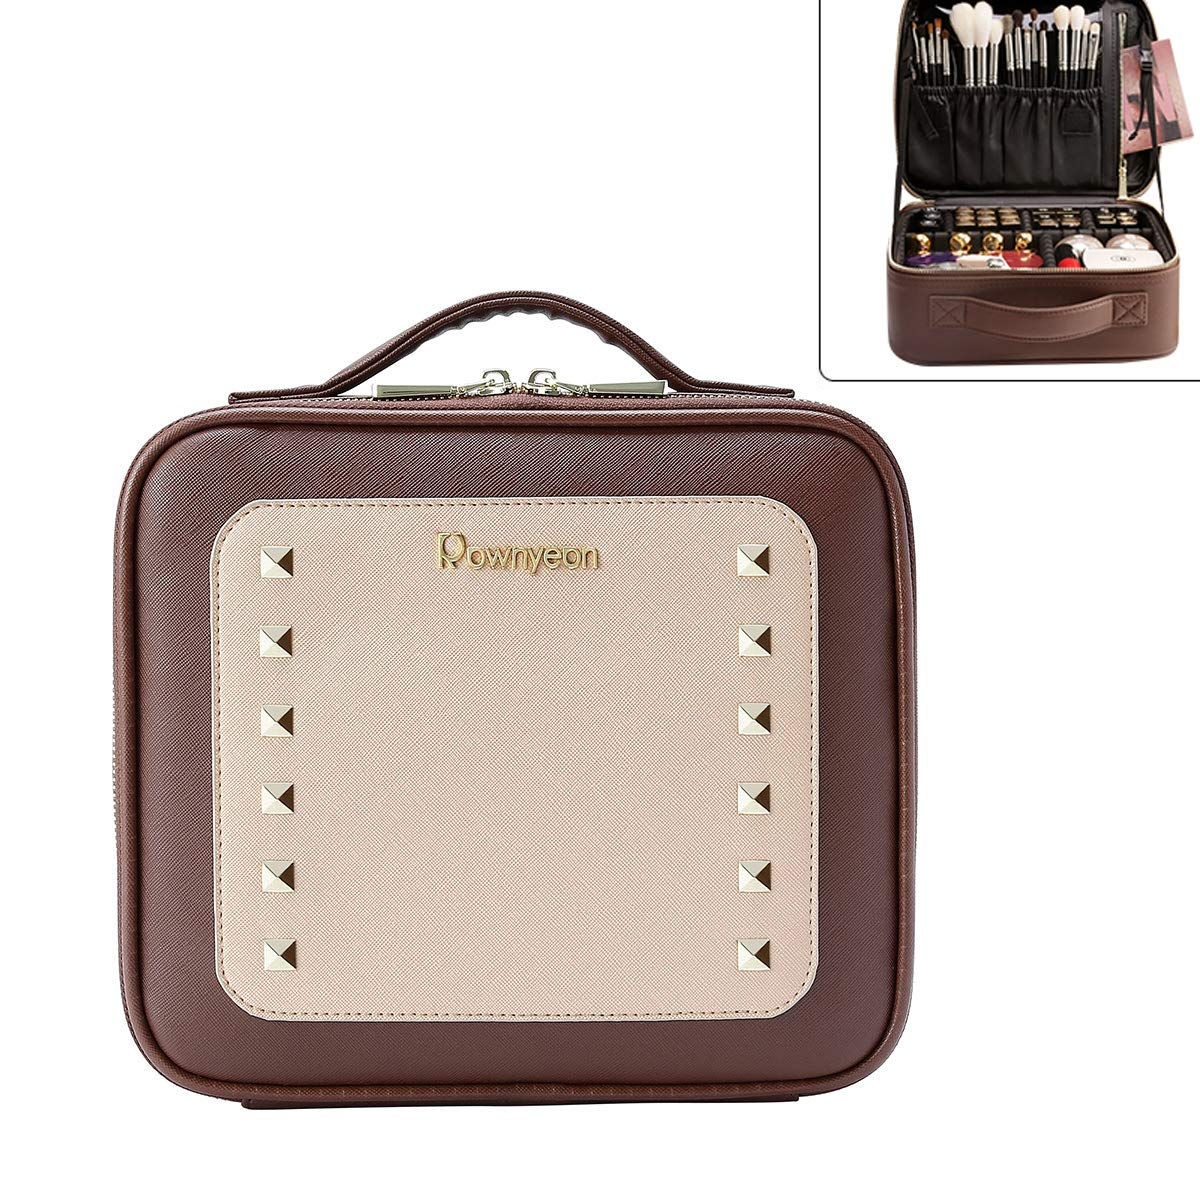 """Women Rivet Train Case Makeup Organizer with Brush Compartment Waterproof Travelling Cosmetic Bag 10.2""""x9""""x3.9"""""""